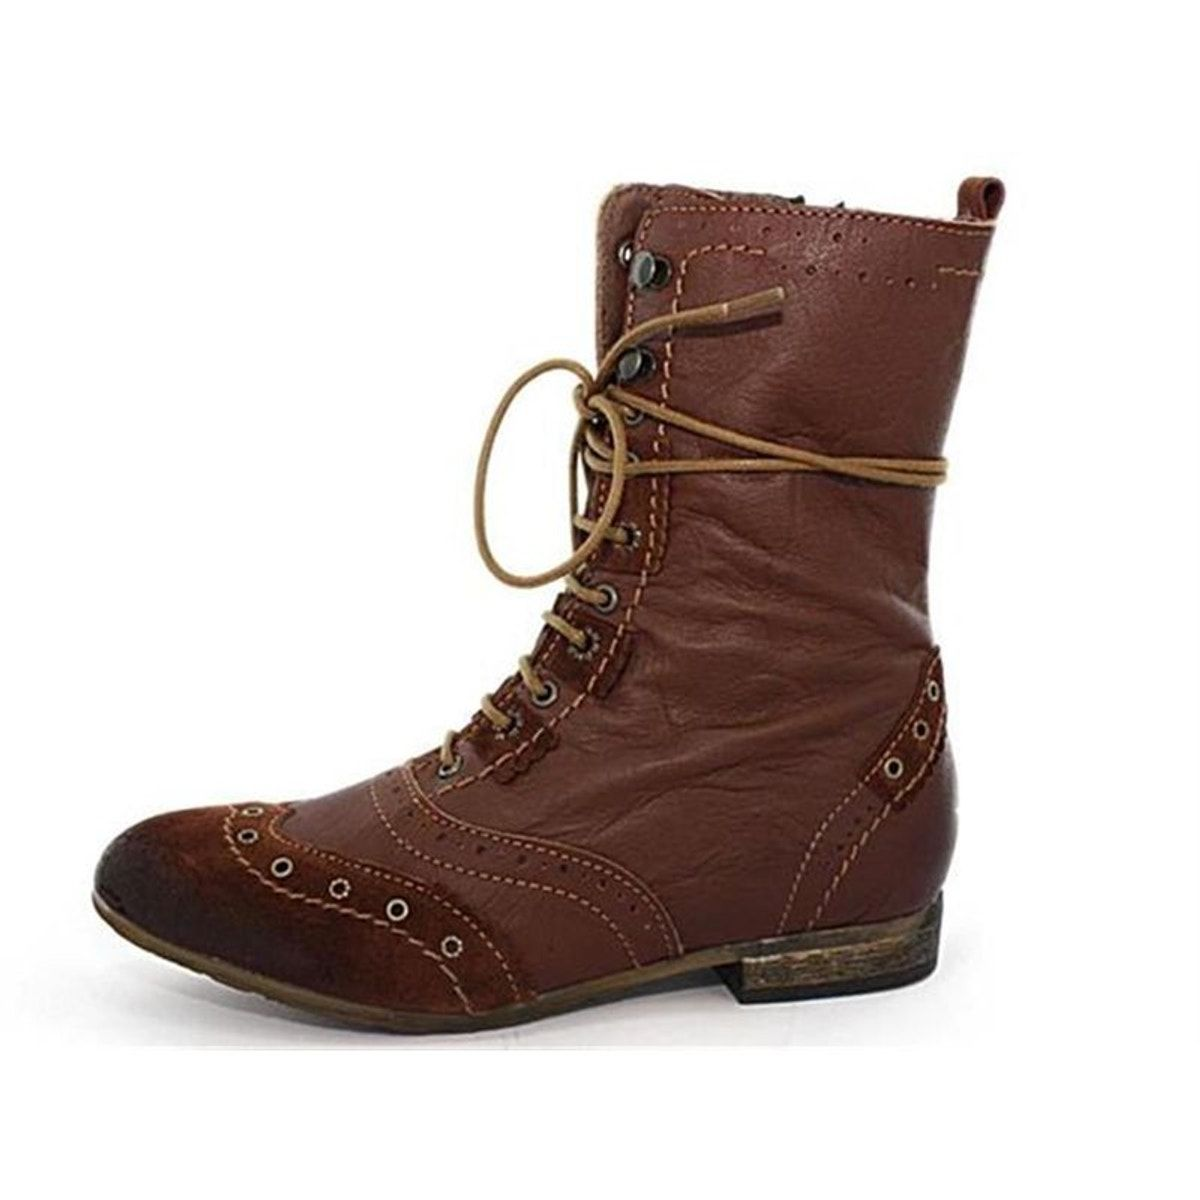 Taille36 in 2019Products Bottines Boots Cuir xBtoChQdsr